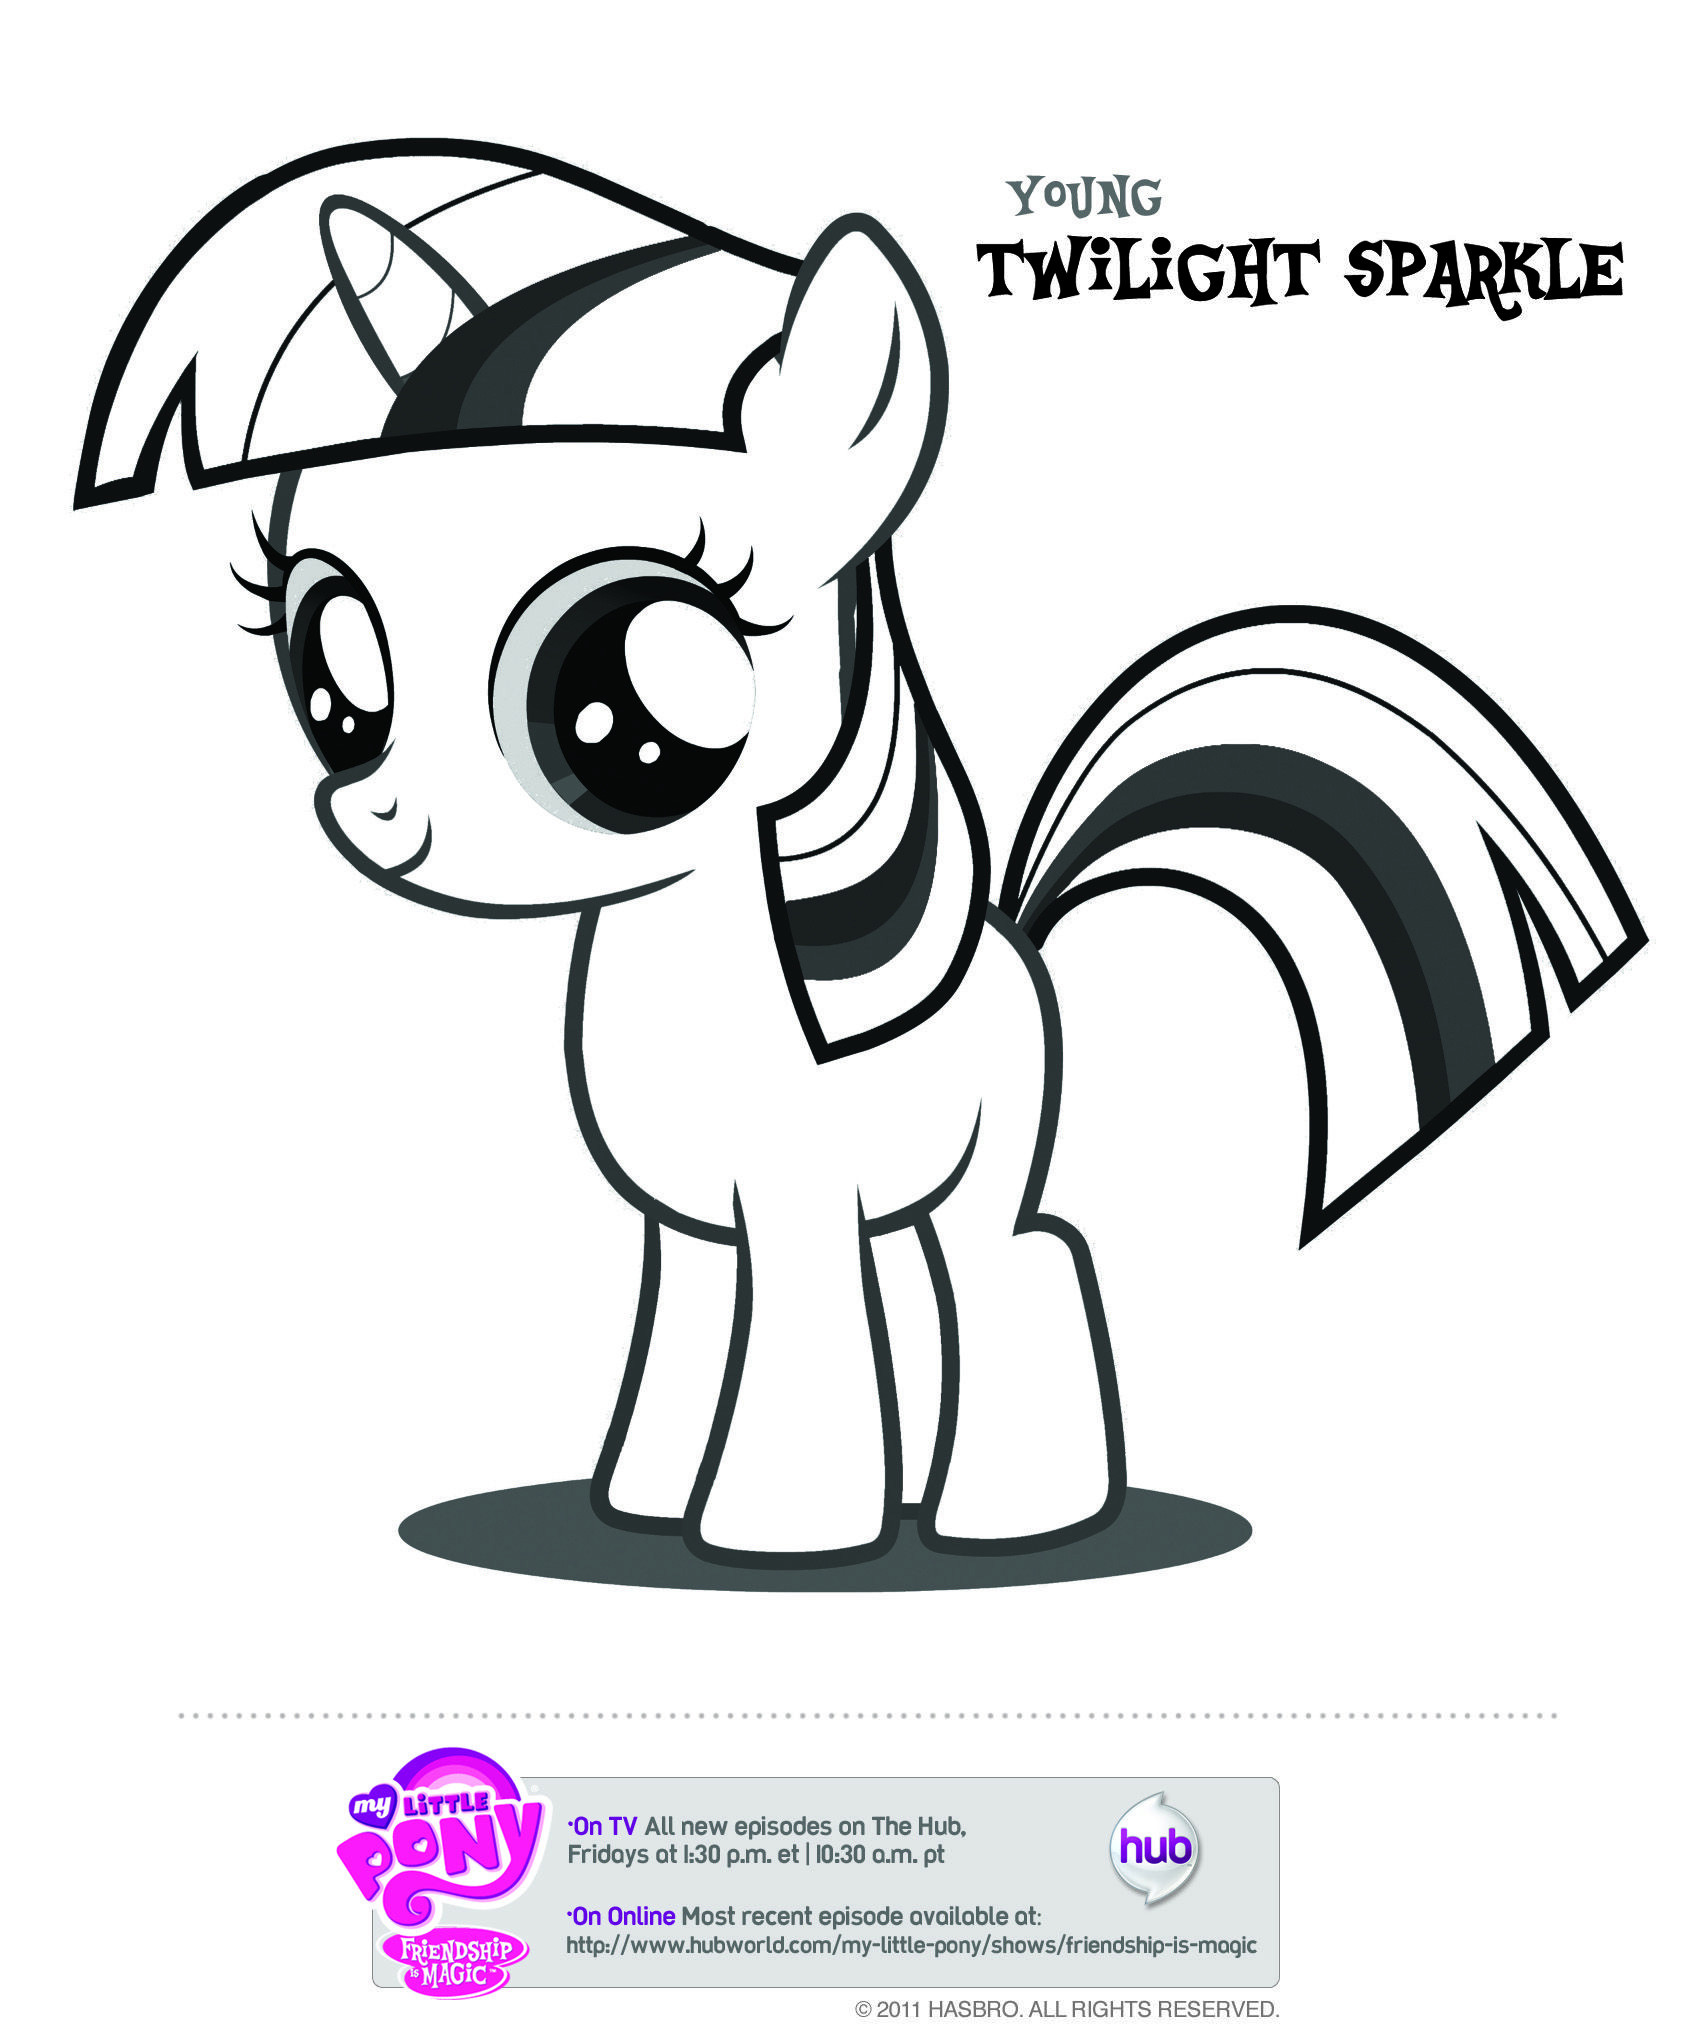 My Little Pony Bilder Zum Ausmalen Genial My Little Pony Downloadable and Printable Coloring Pages From the Fotografieren